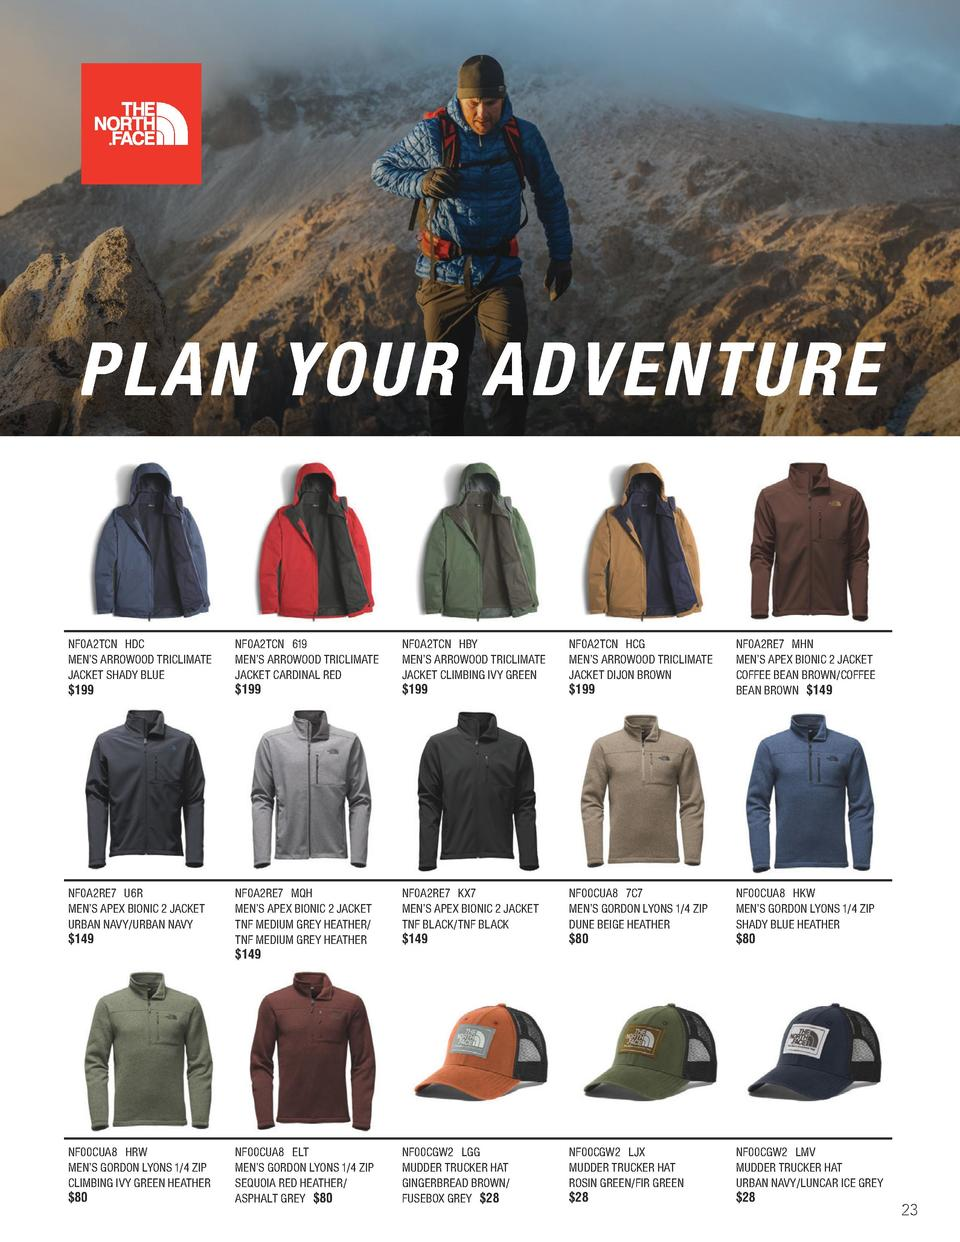 PLAN YOUR ADVENTURE  NF0A2TCN HDC MEN   S ARROWOOD TRICLIMATE JACKET SHADY BLUE  199.00  NF0A2TCN 619 MEN   S ARROWOOD TRI...